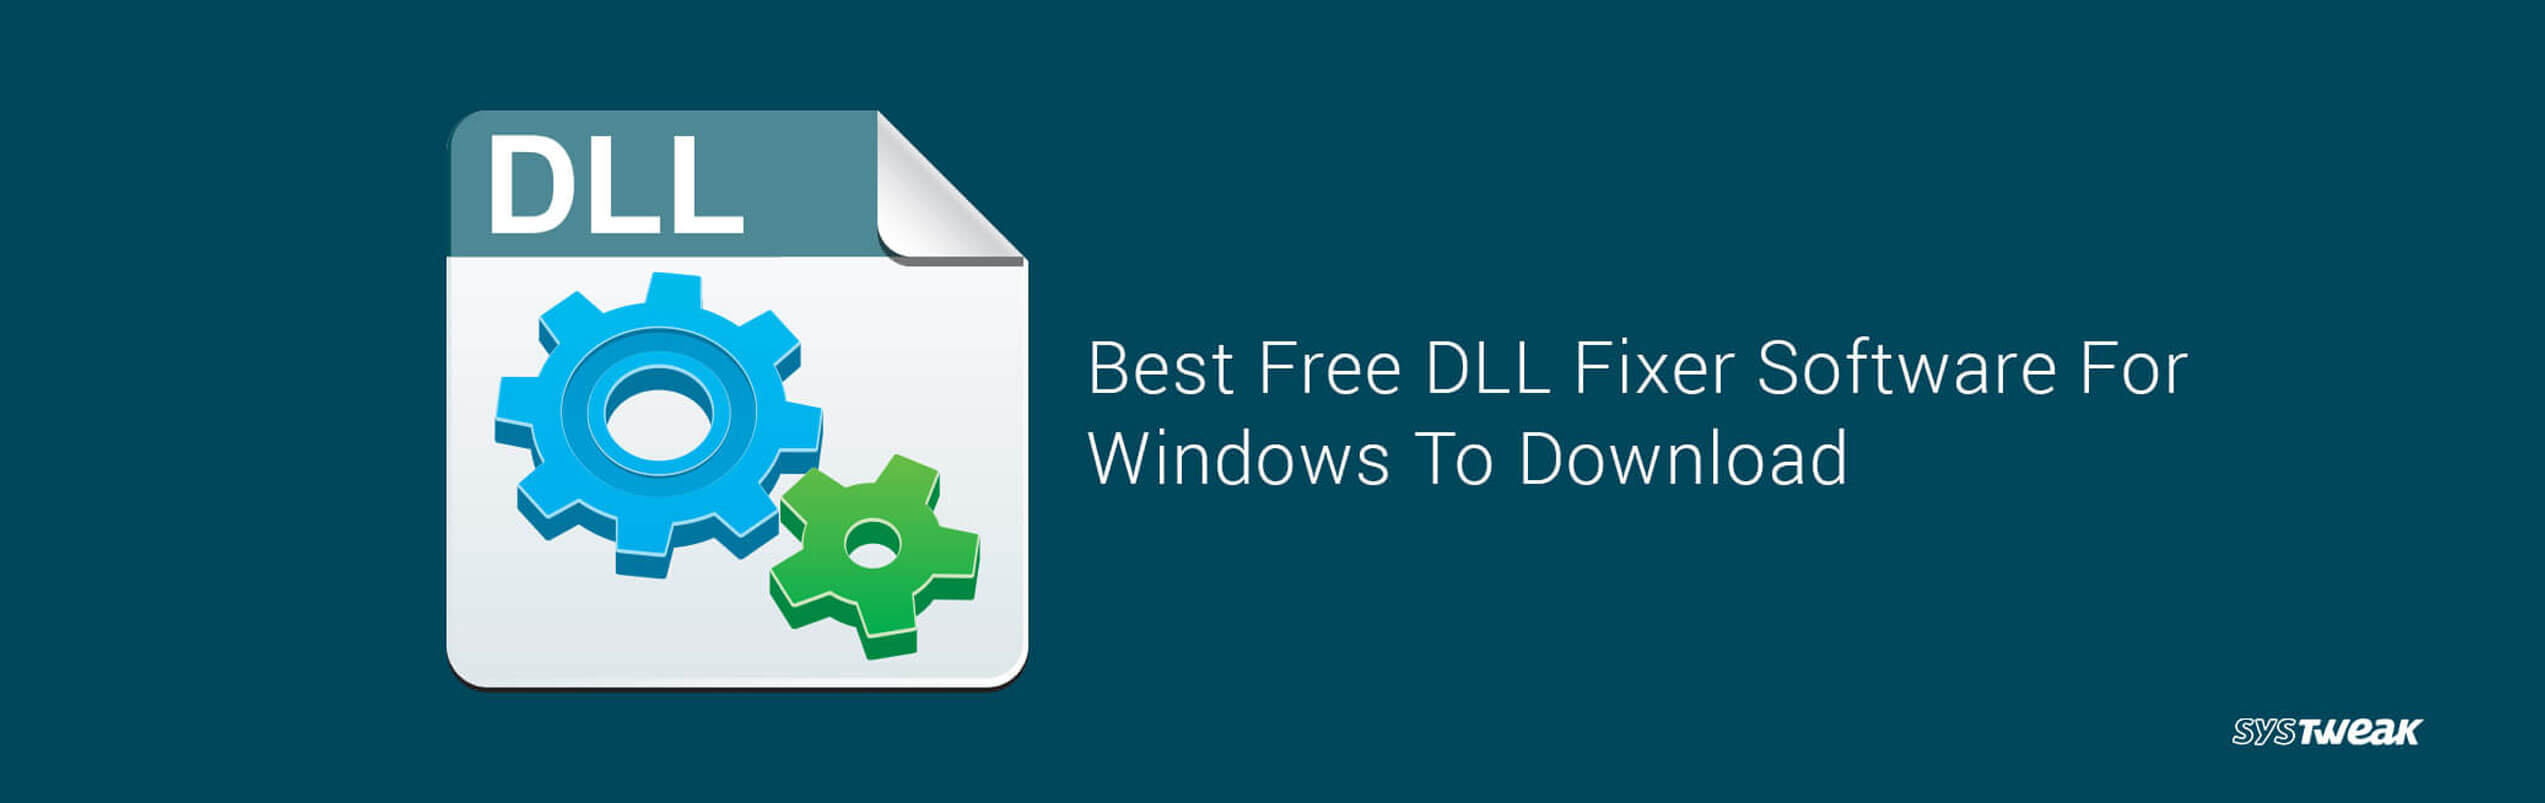 10 Best Free DLL Fixer Software For Windows To Download 2018